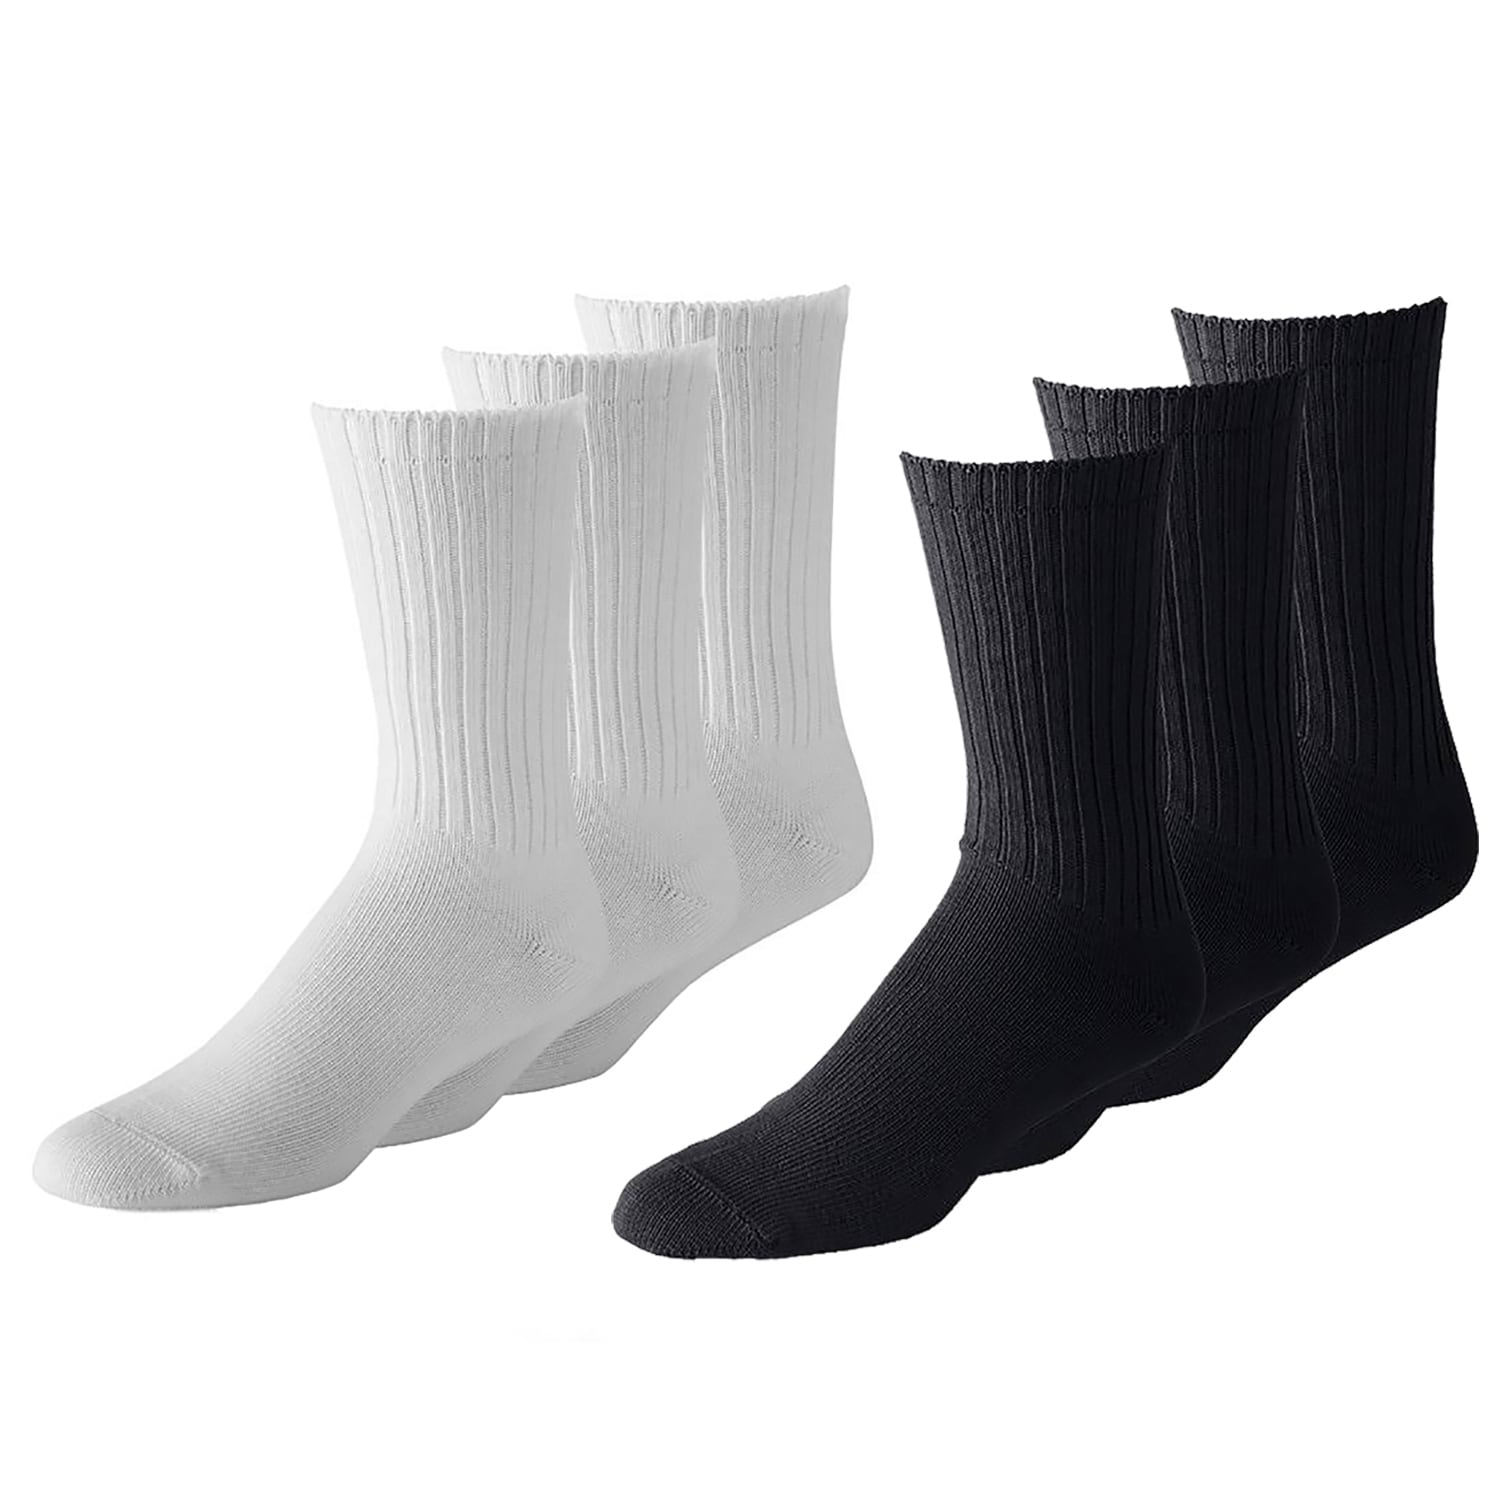 144 Pairs Qraftsy Men or Women Classic Low Cut Polyester Socks Wholesale Lot